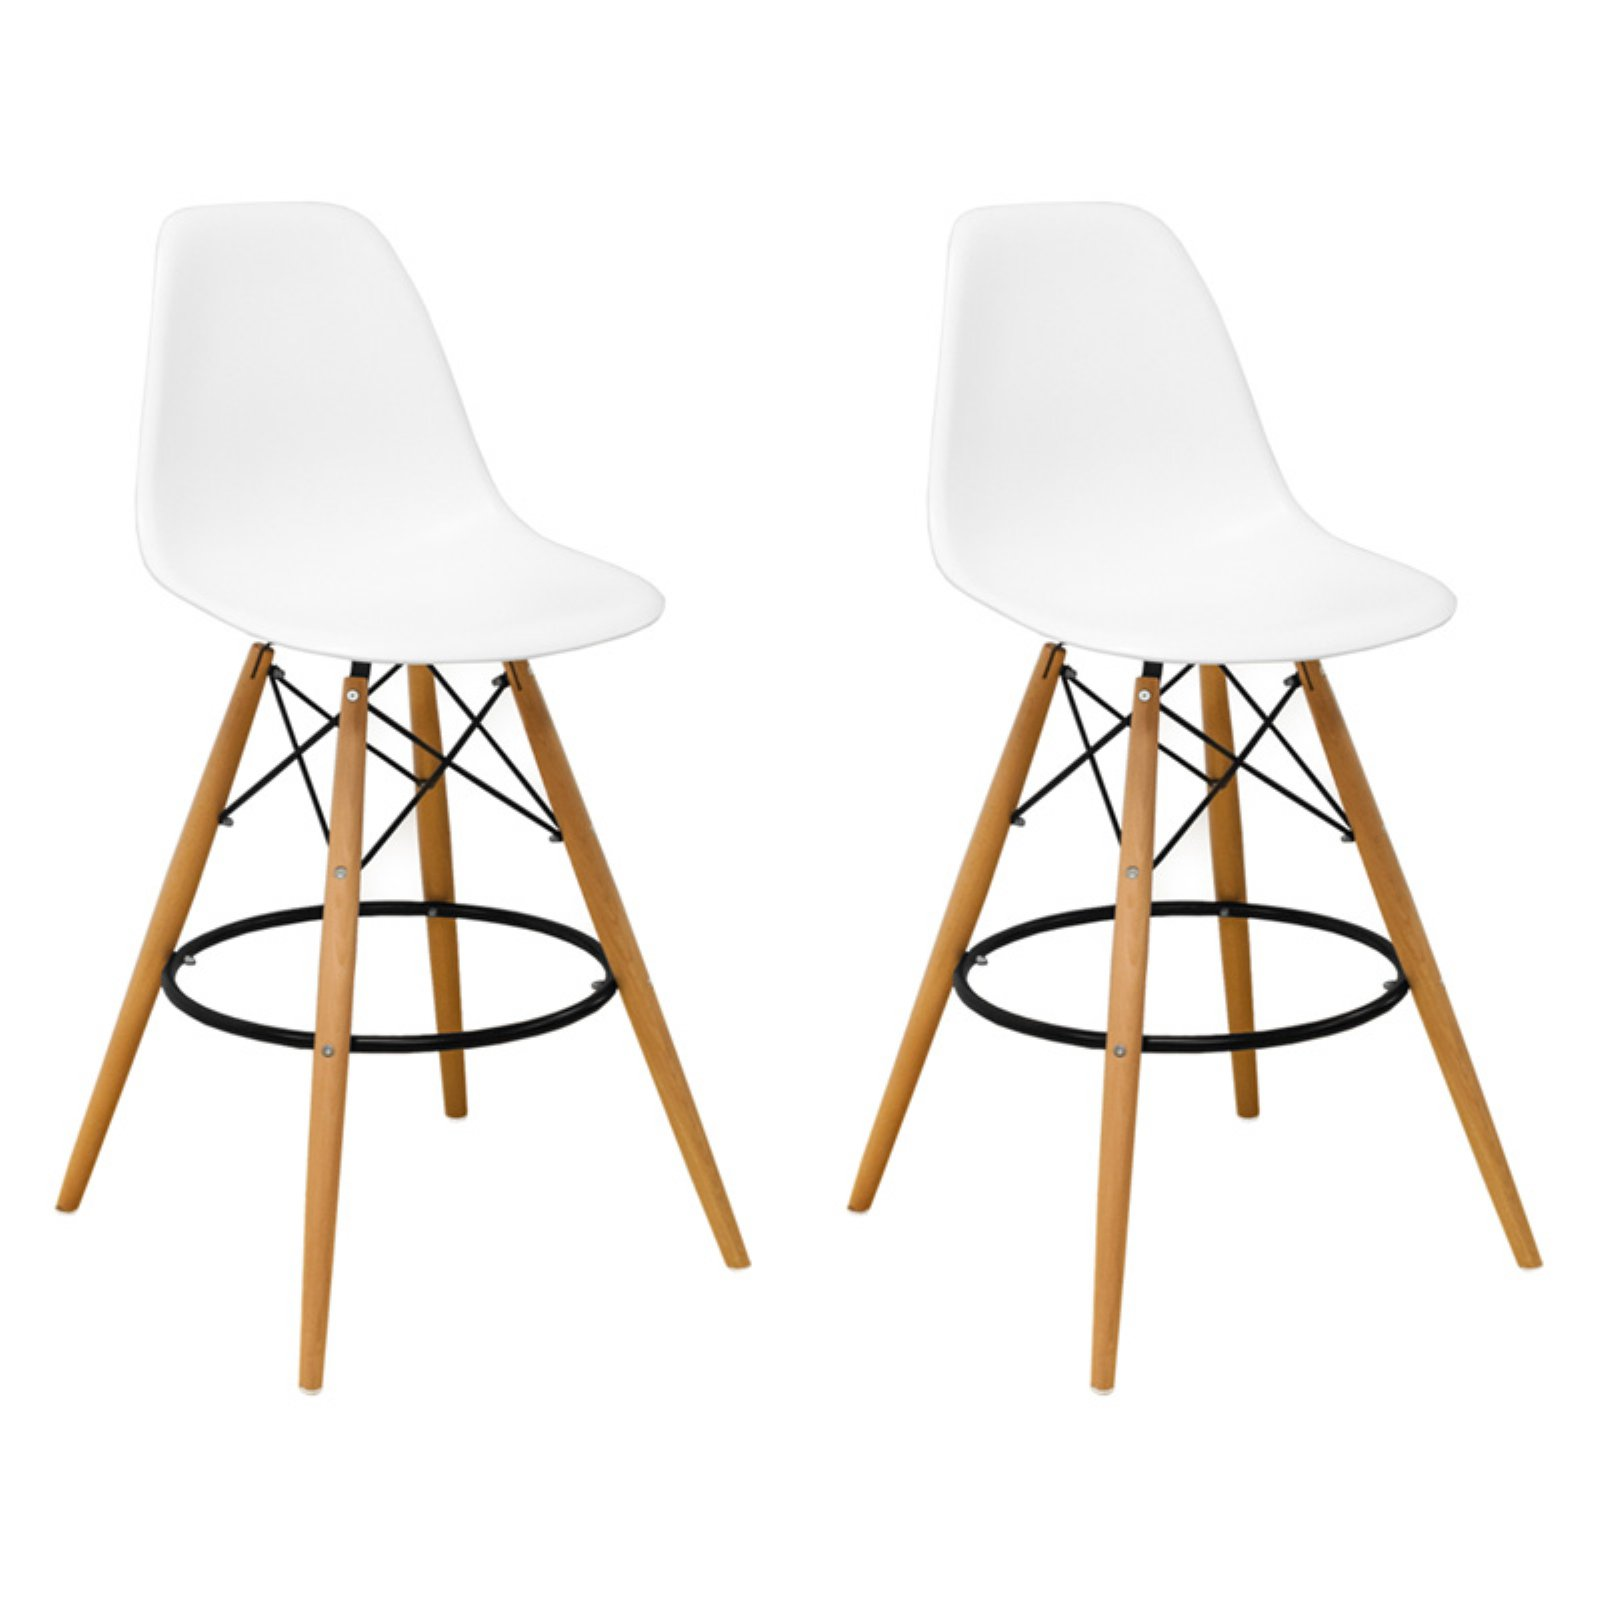 Paris Tower Mid Century Modern Barstool- Set of 2 (White)